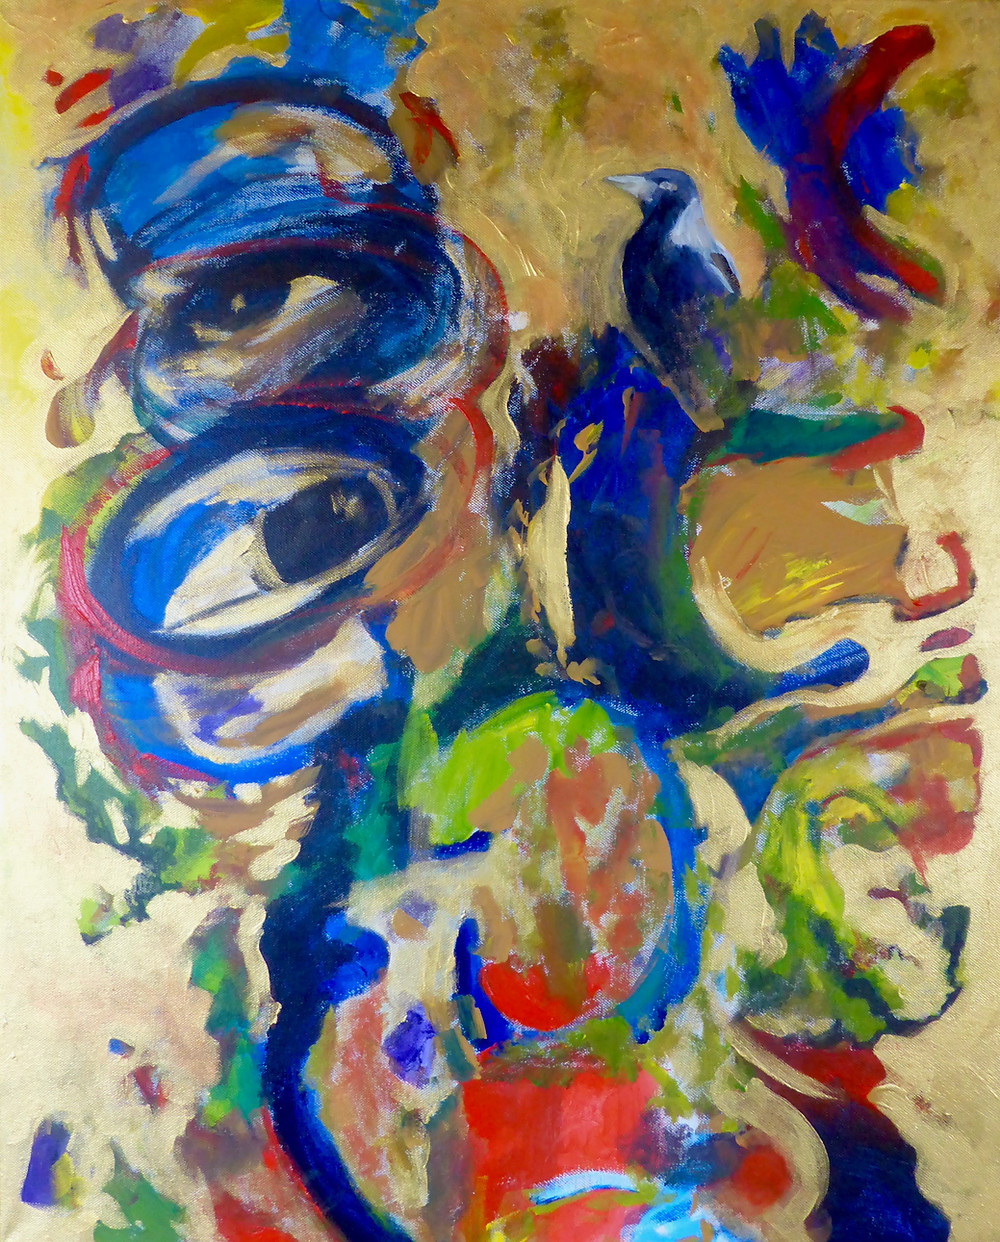 Abstract painting art therapy by artist Louise Mustard